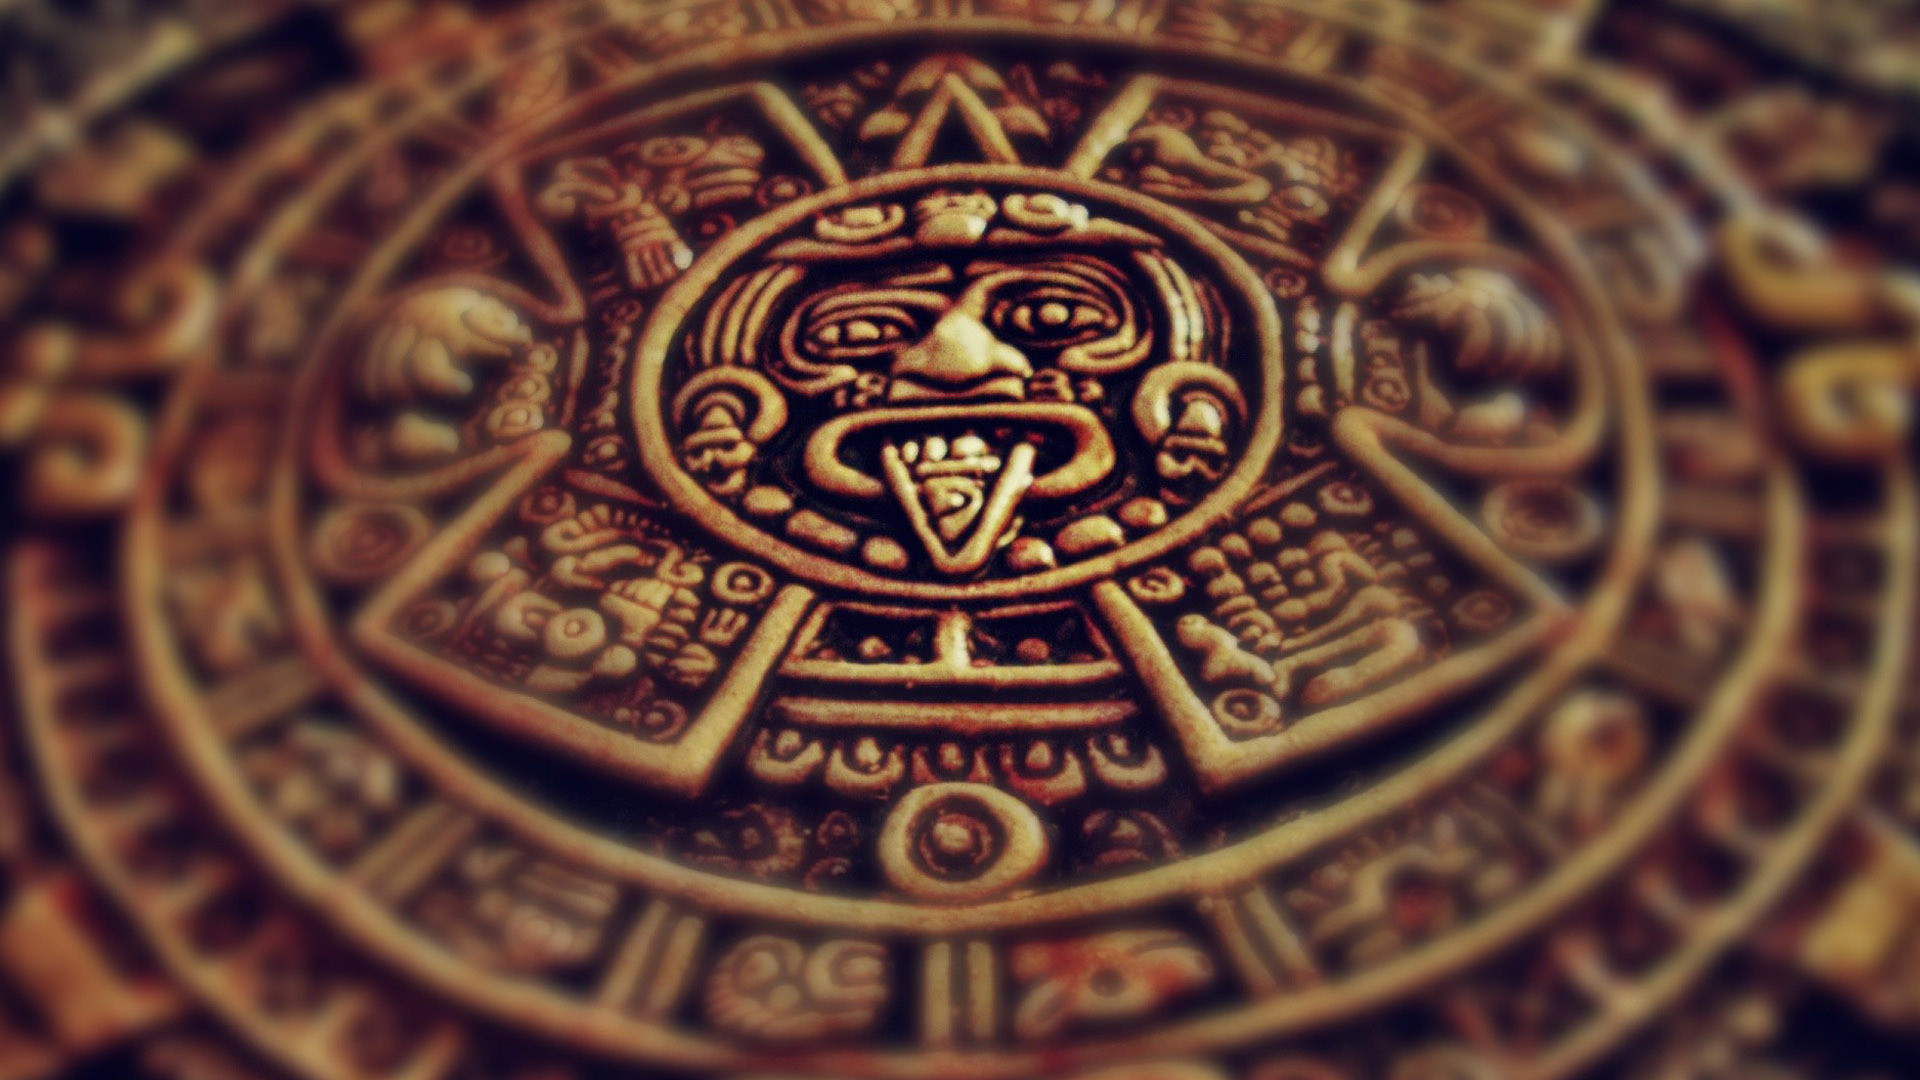 1920x1080 Aztec Calendar Wallpaper Free Download.